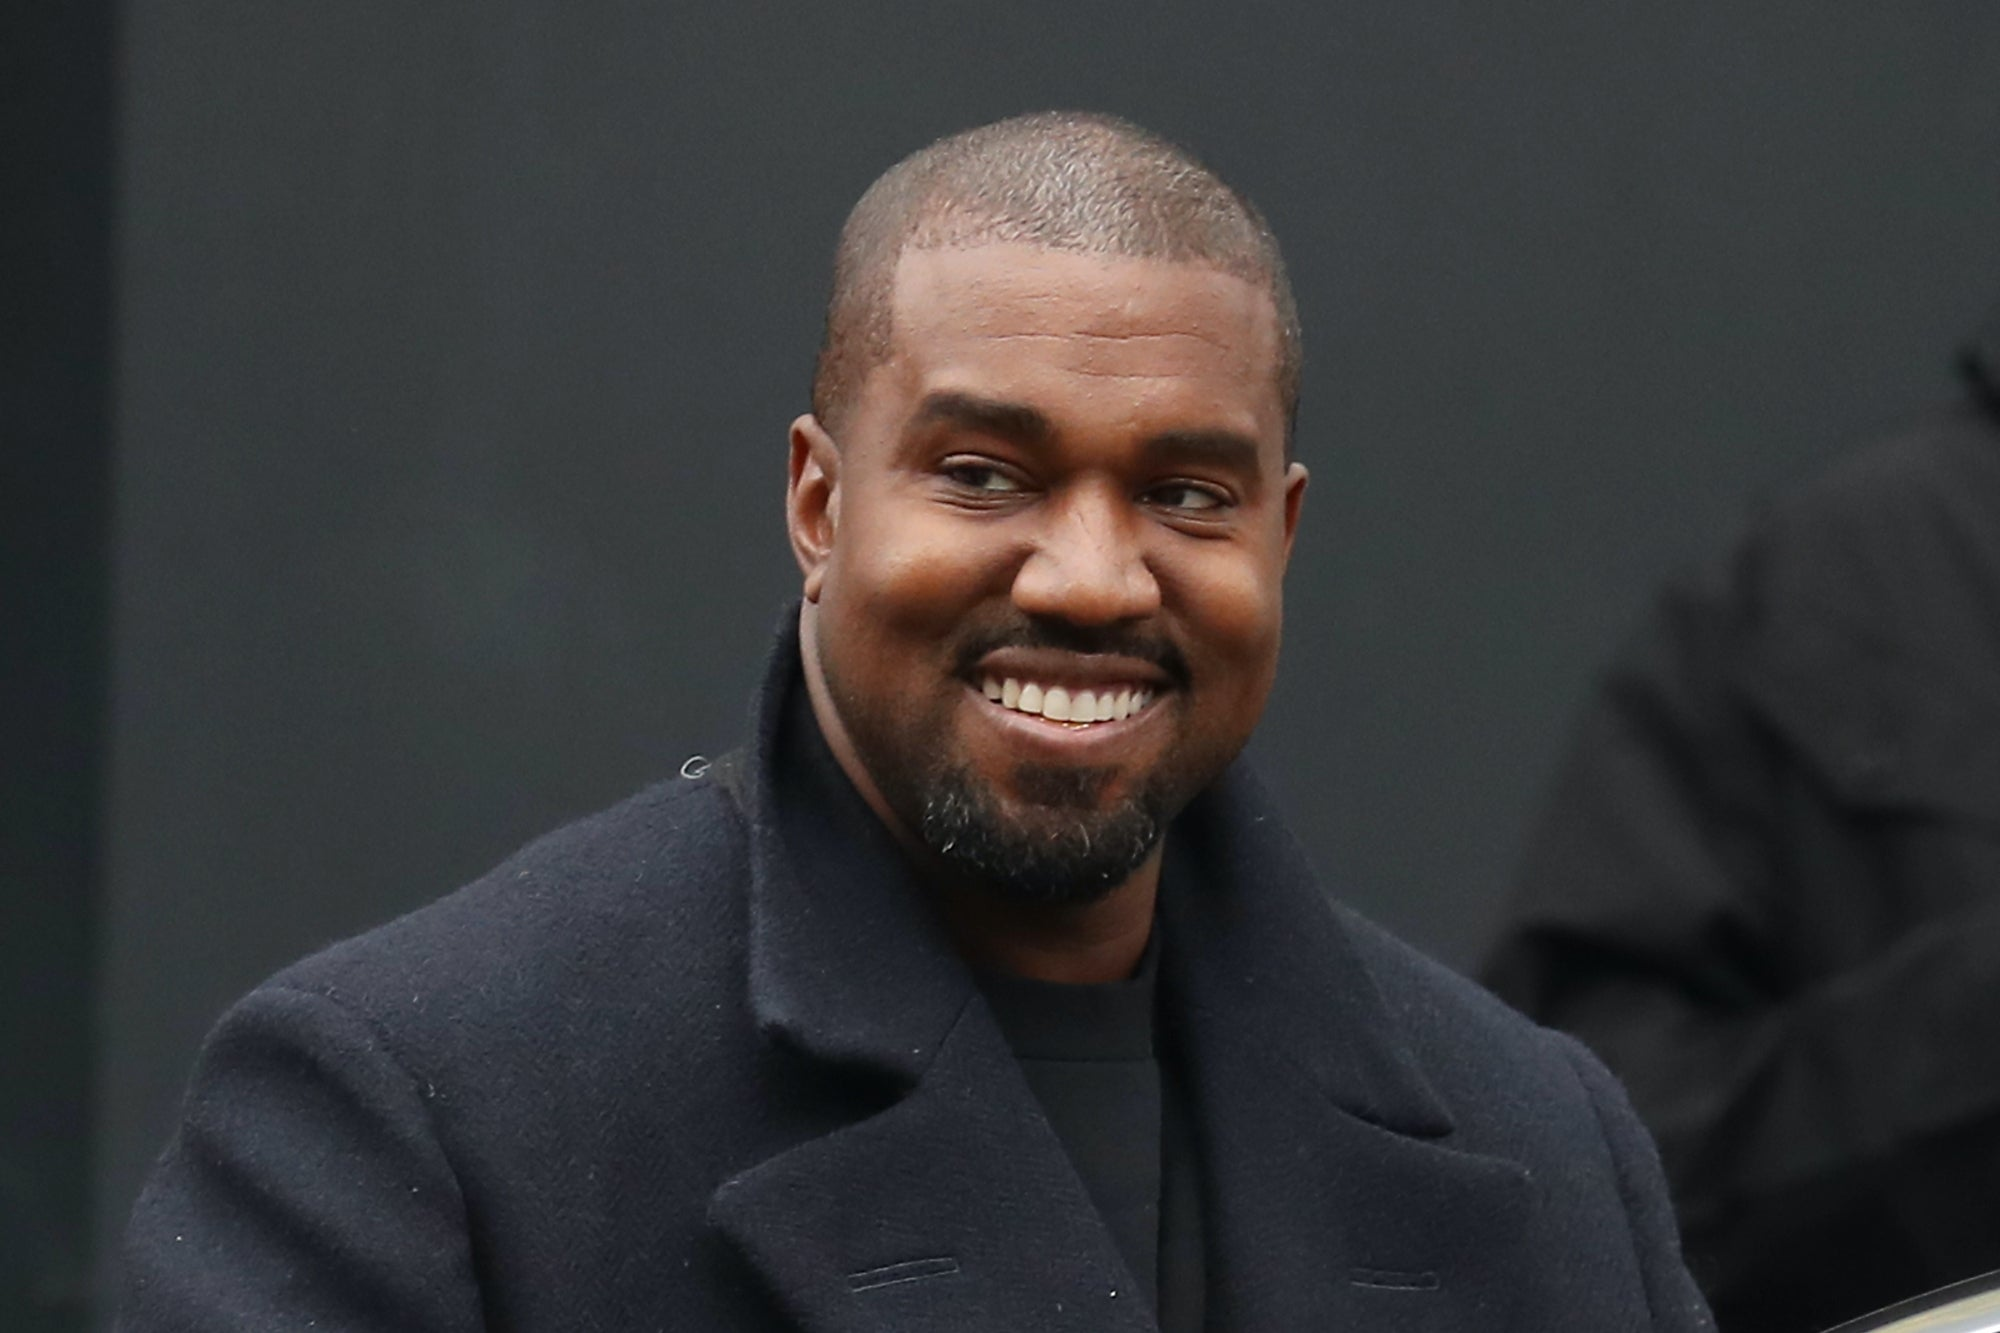 Billionaire Kanye West Files 'DONDA' Trademark as He Prepares to Launch Tech Company